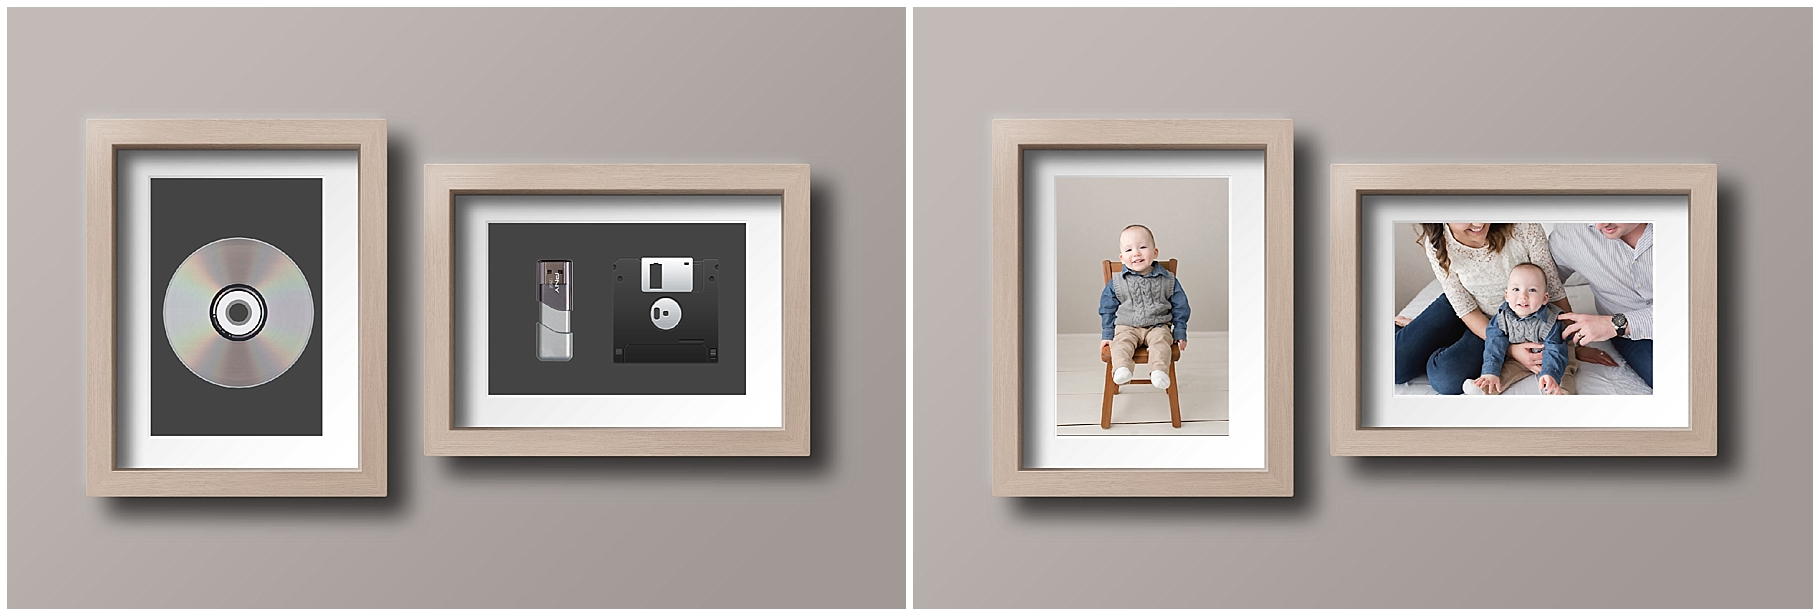 Digital files vs print, Sycamore Newborn Photographer, Sycamore Photographer, Elburn Photographer, Dekalb Photographer, St Charles Photographer, Chicago Photographer